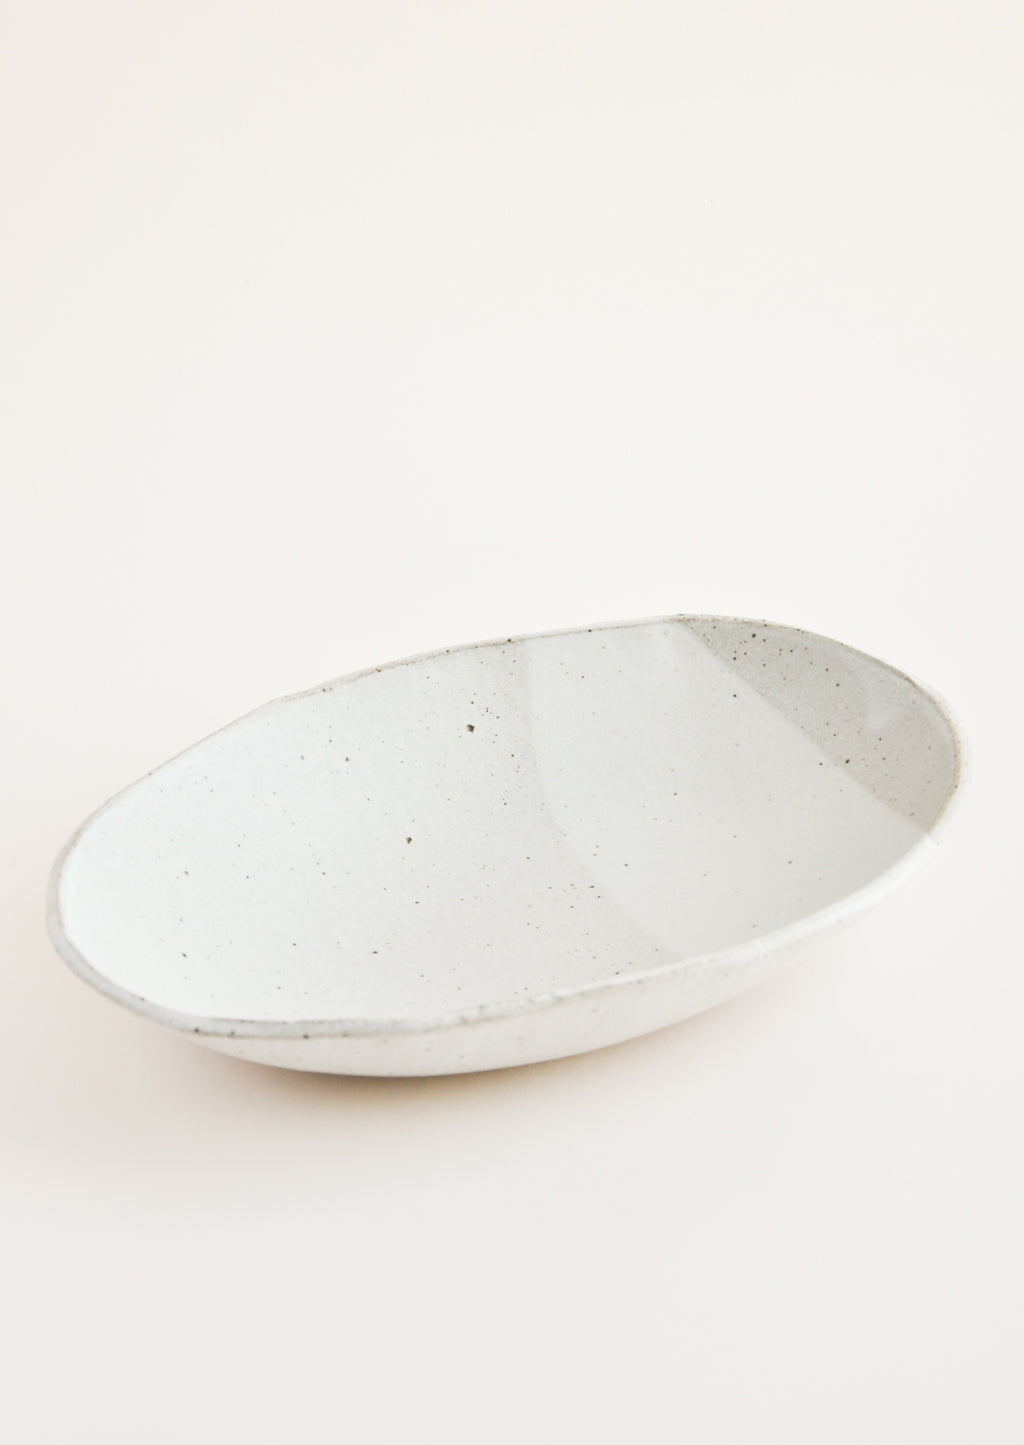 Matte Grey: Rustic Ceramic Platter in Matte Grey - LEIF